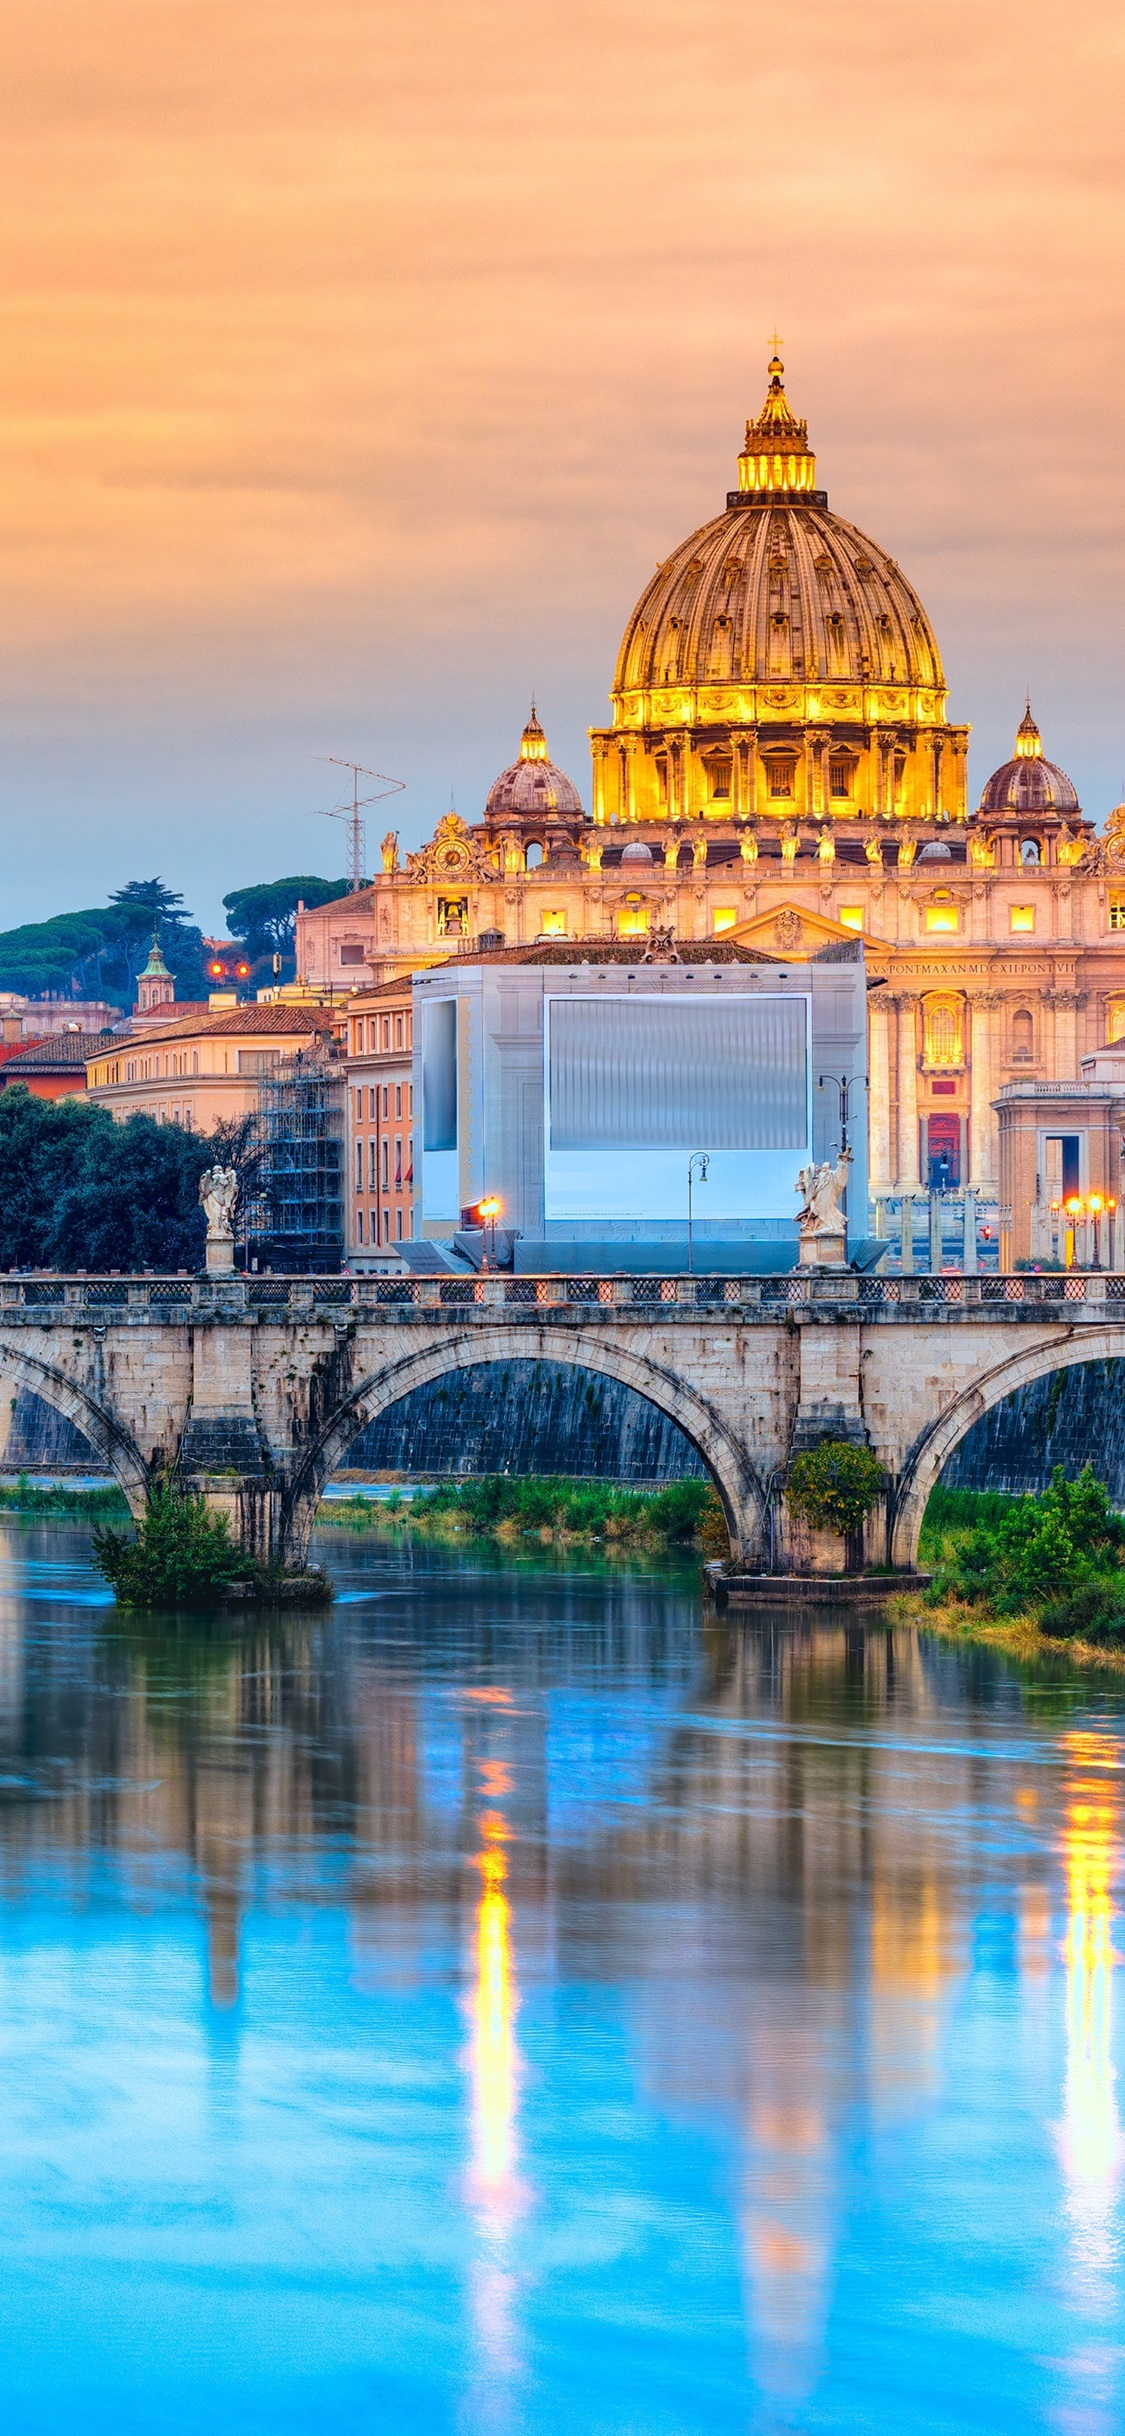 Travel To Rome Italy Cathedral River Bridge Dusk